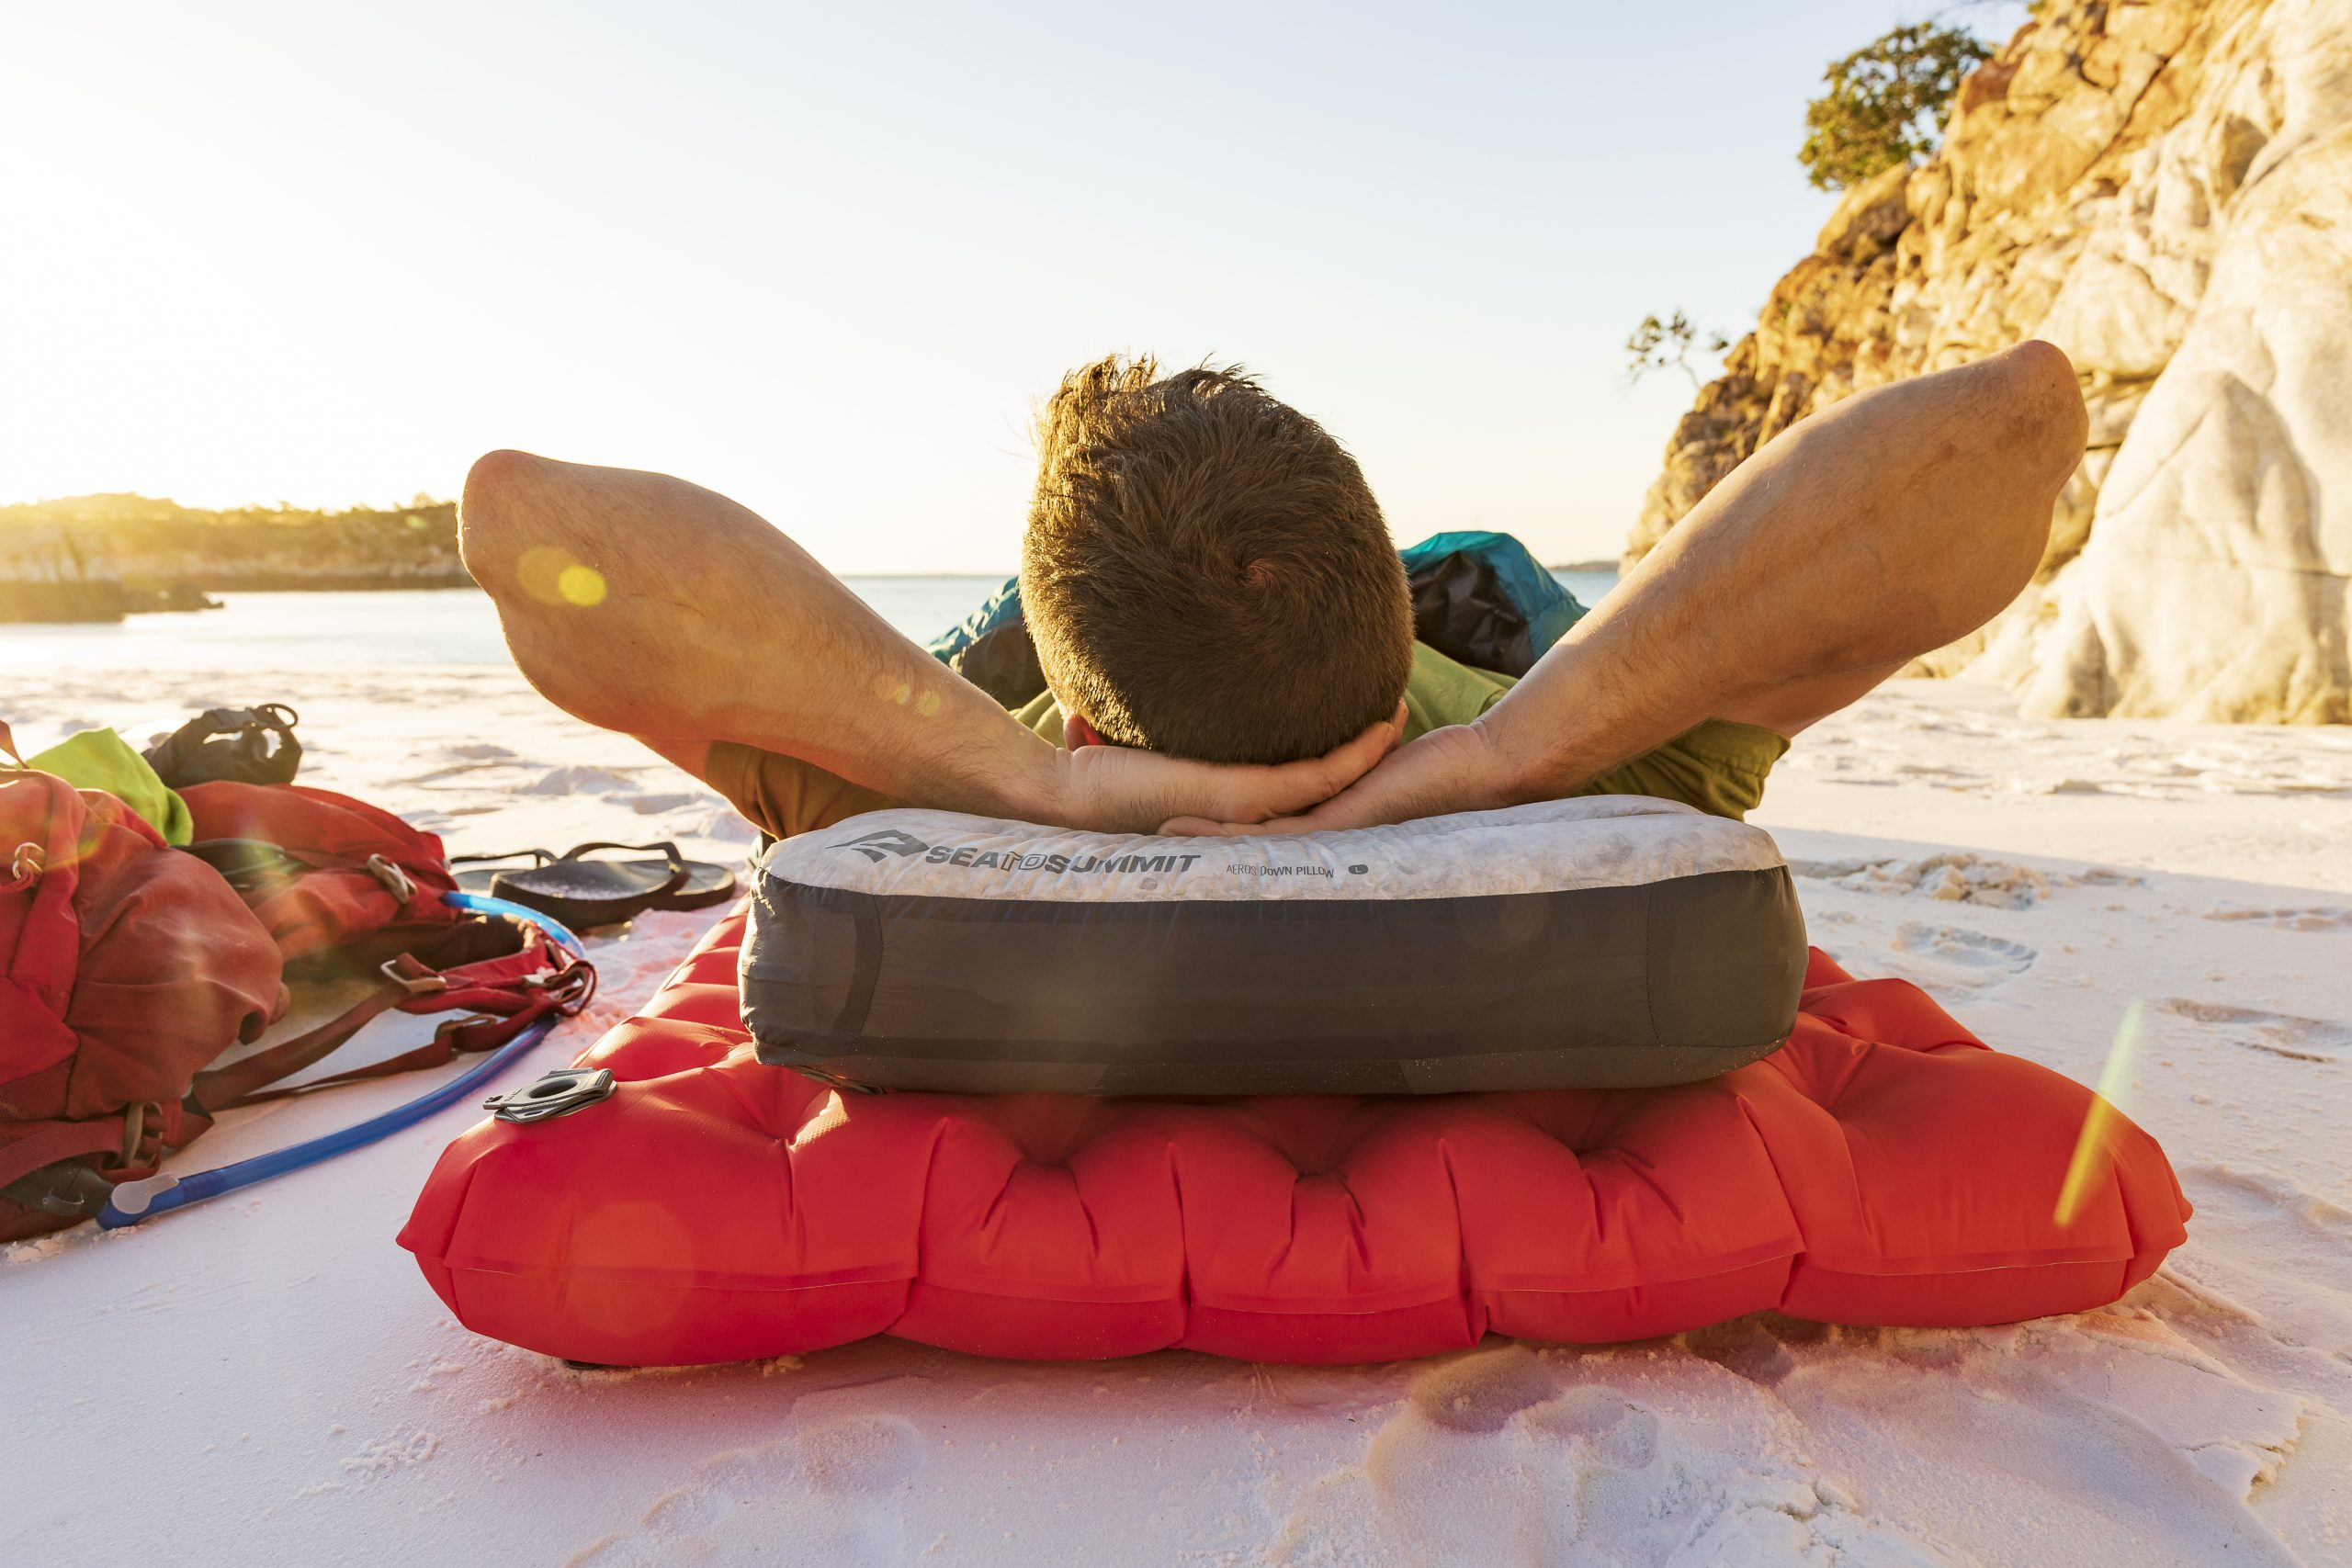 Sea to Summit offers all sorts of camp gear, including inflatable pillows and sleeping pads like the red pad and gray and white pillow shown here with a man laying on it.